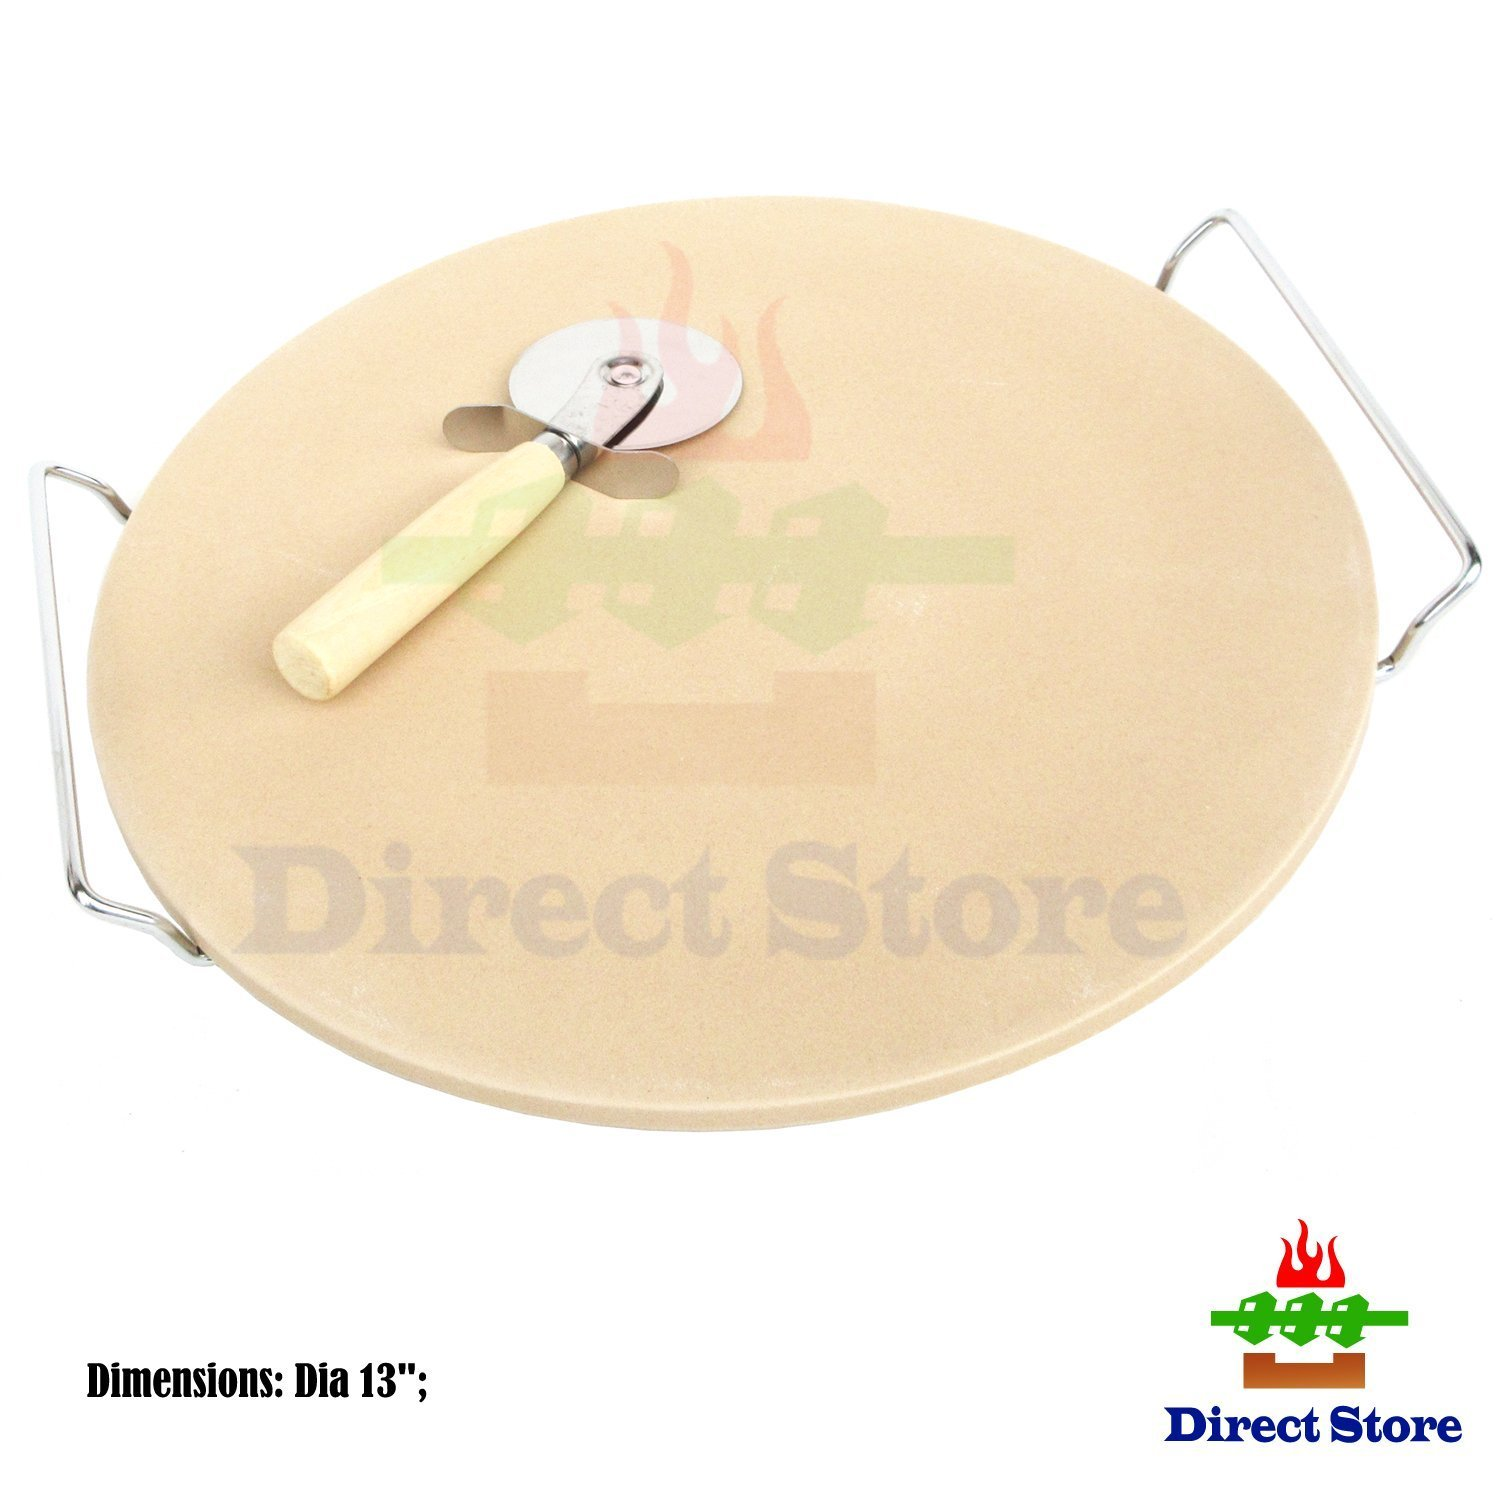 Direct store Parts DJ102 (13 inch) Round oven Ceramic Pizza Stone and Pizza Cutter, For Oven